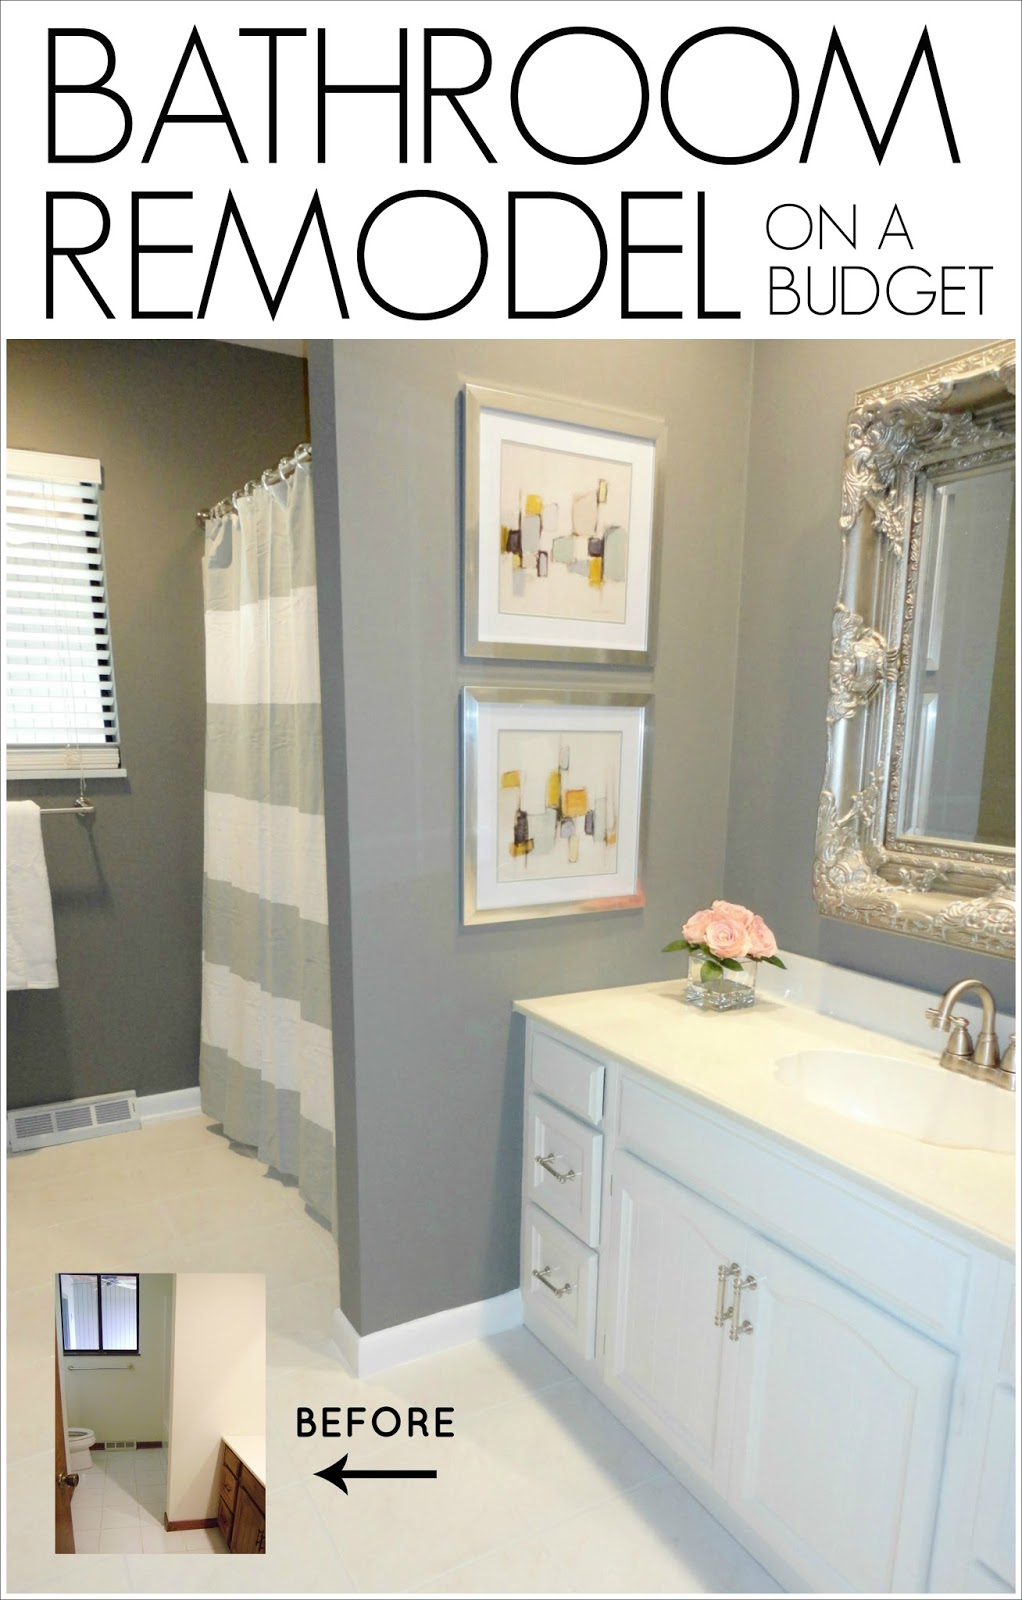 Fancy DIY Bathroom Remodel on a Budget